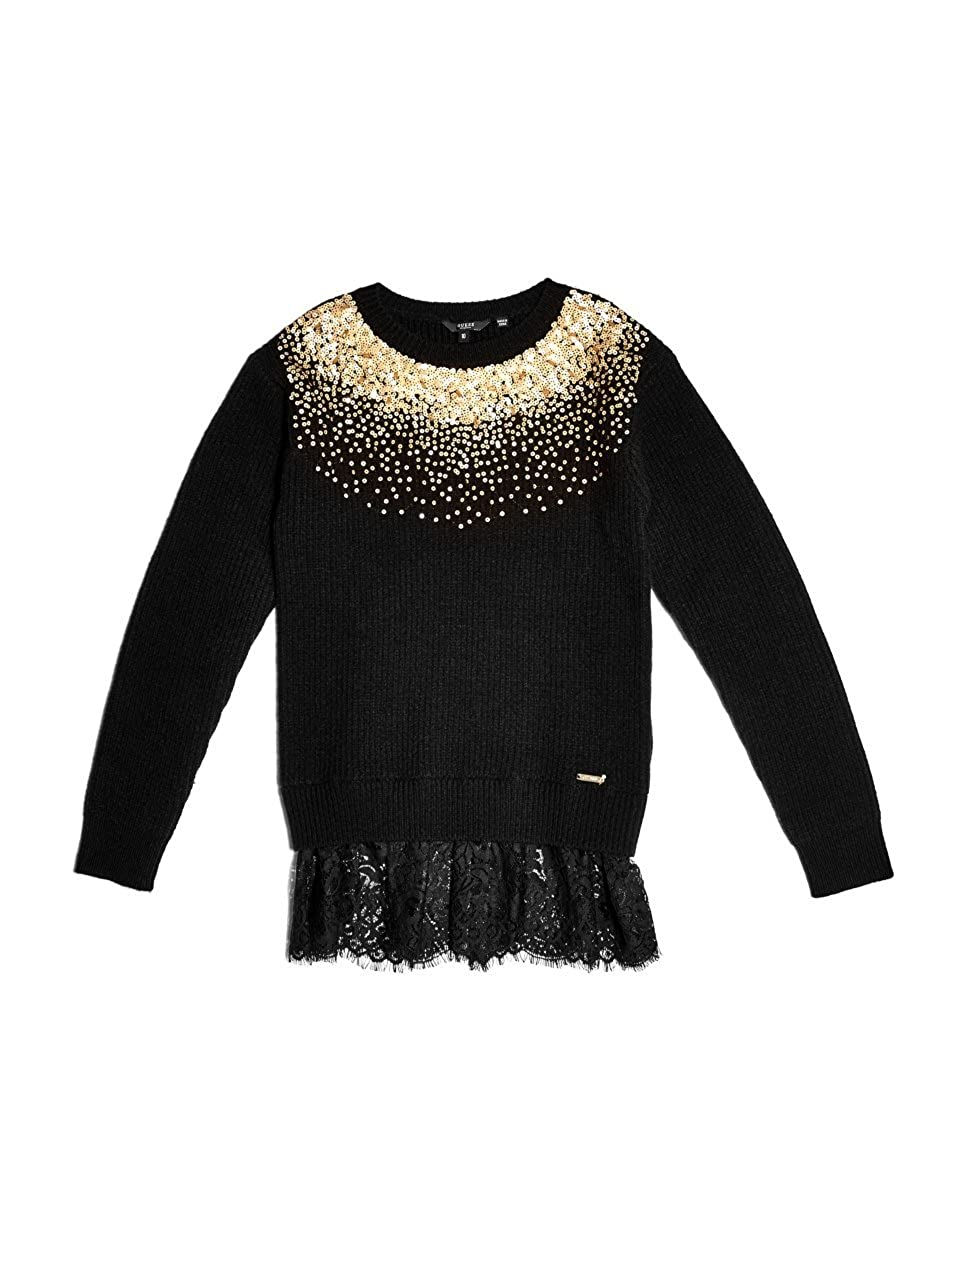 GUESS Embellished Sweater (7-16)